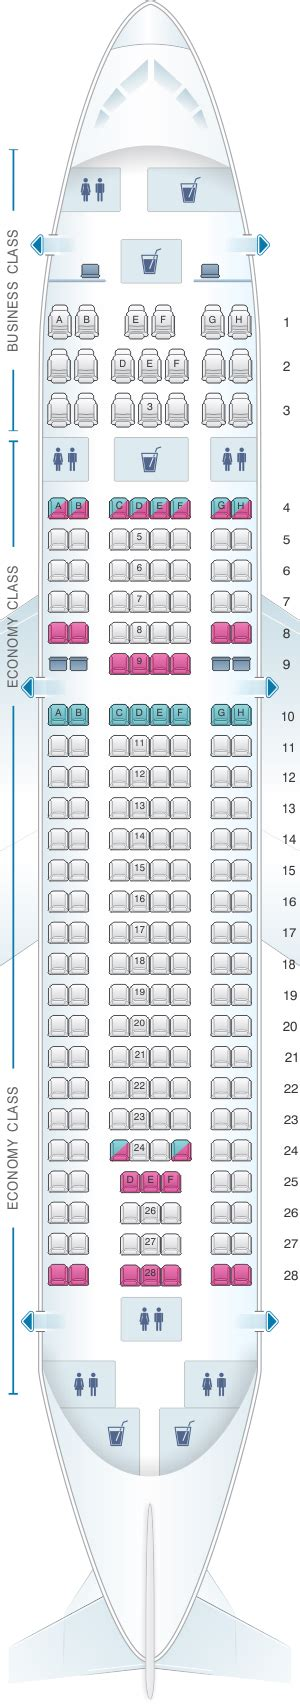 airbus a310 300 seating seat map tarom airbus a310 326 209pax seatmaestro